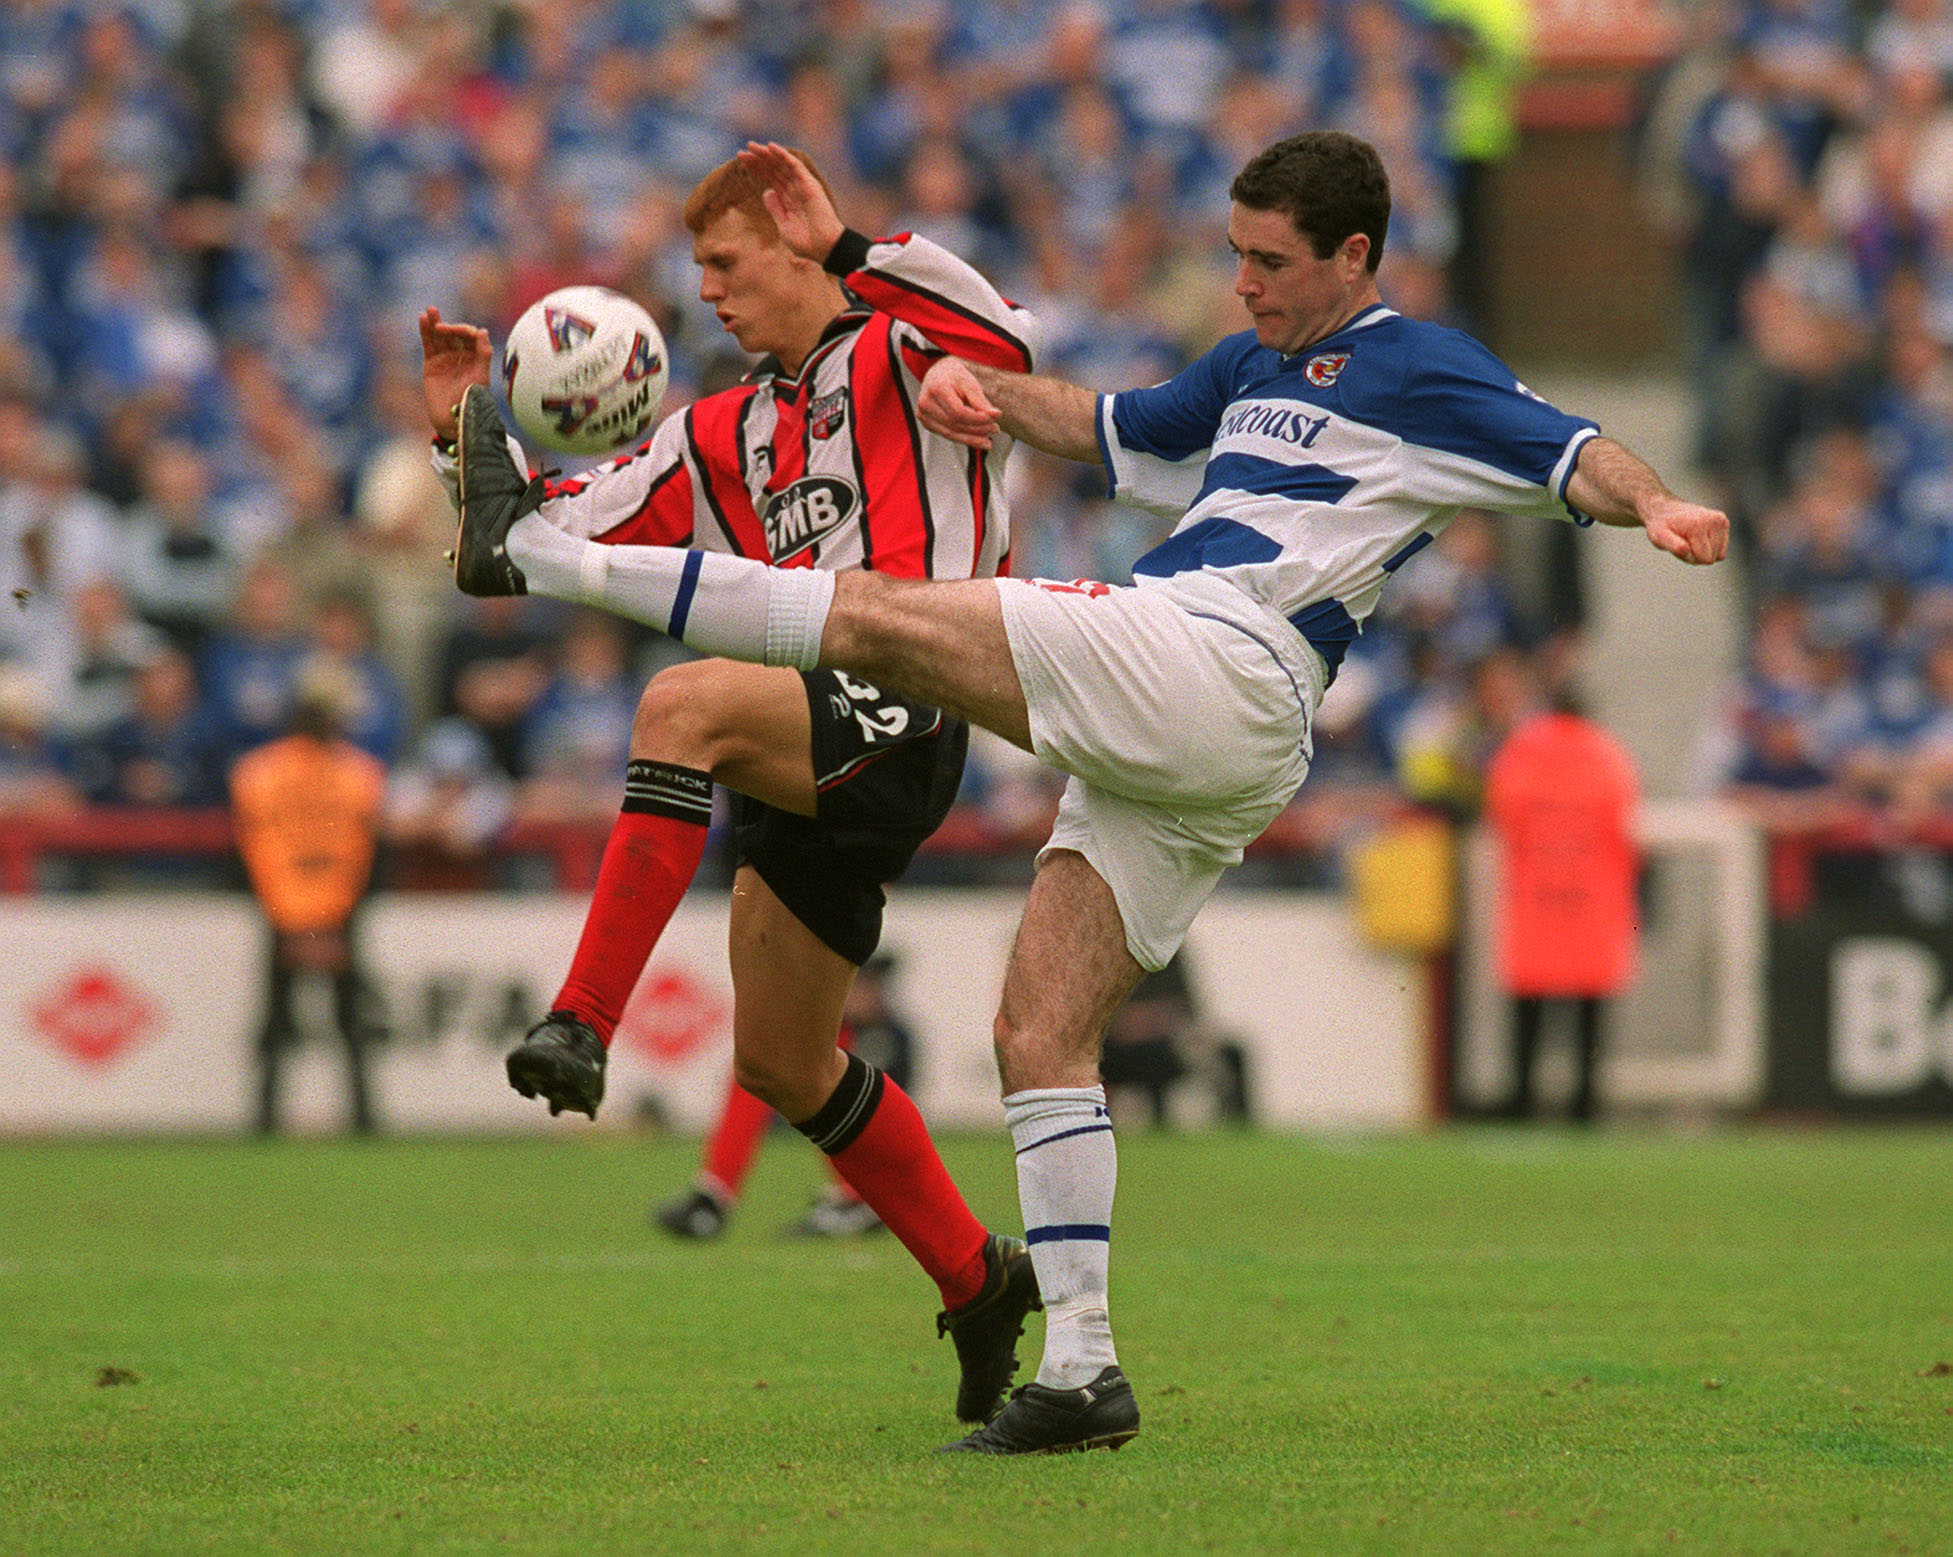 Andy Hughes and some ex-Arsenal bloke.